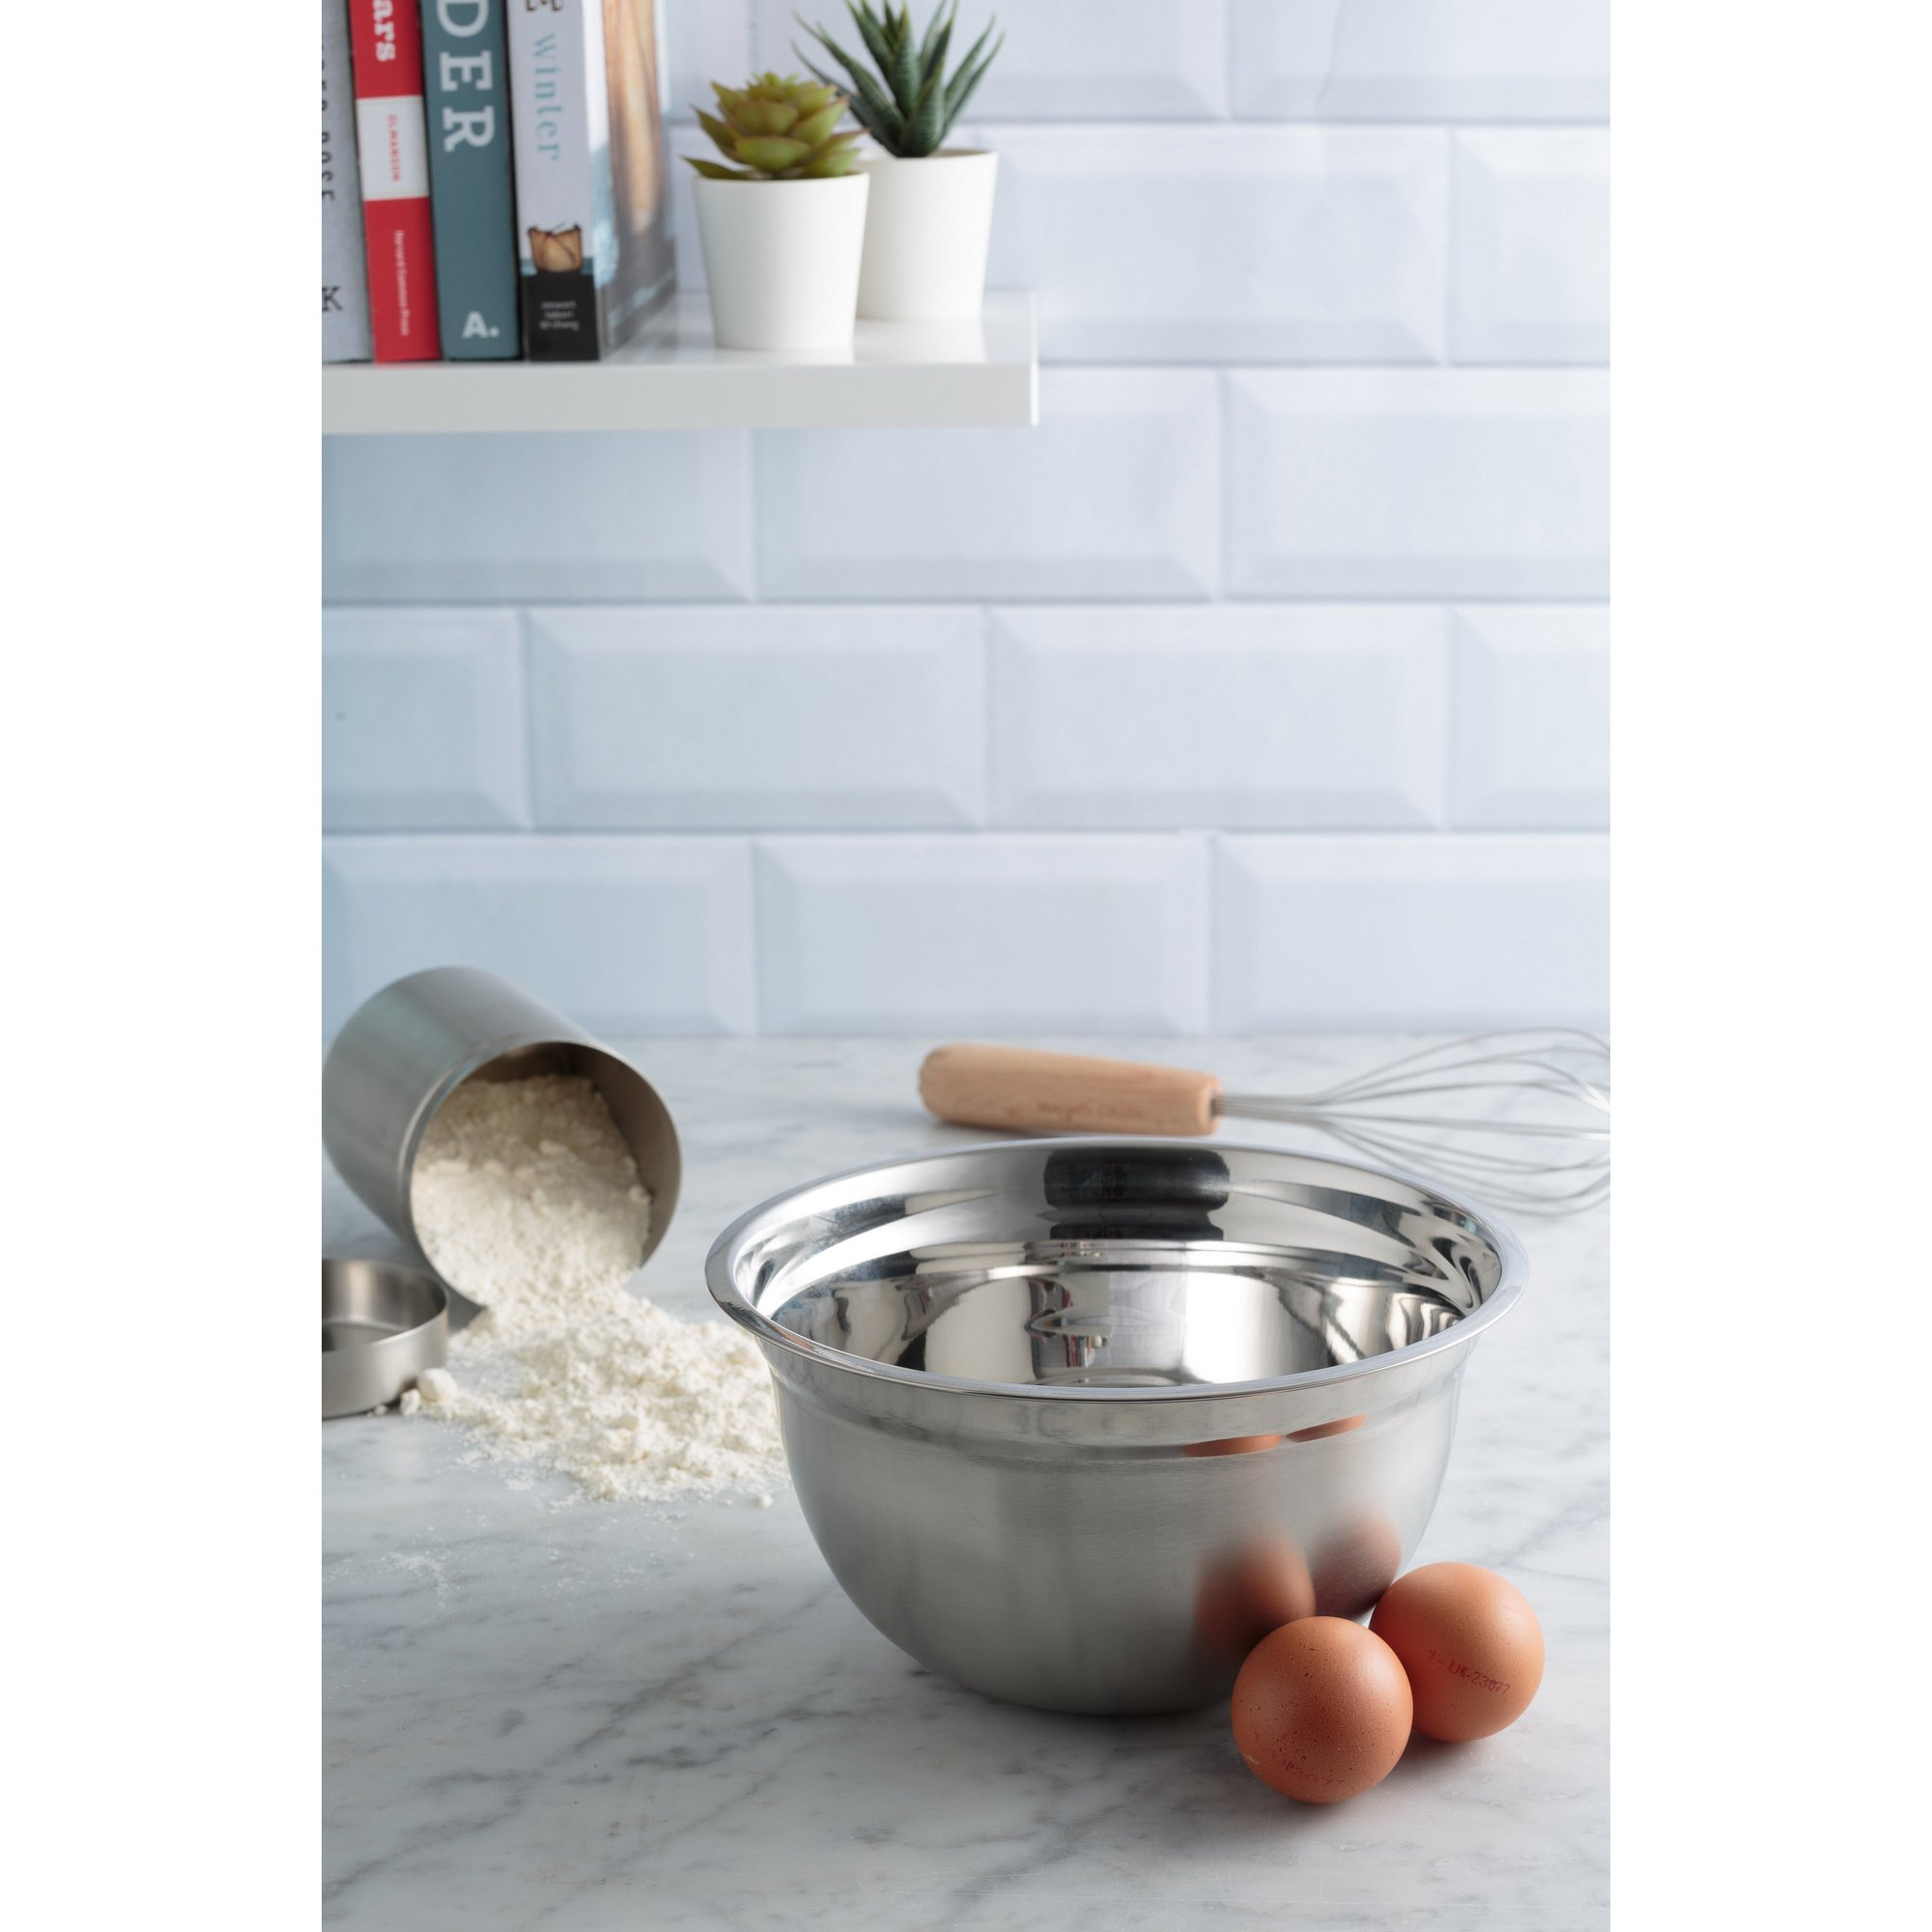 Image of Viners Everyday Set of 2 Mixing Bowls